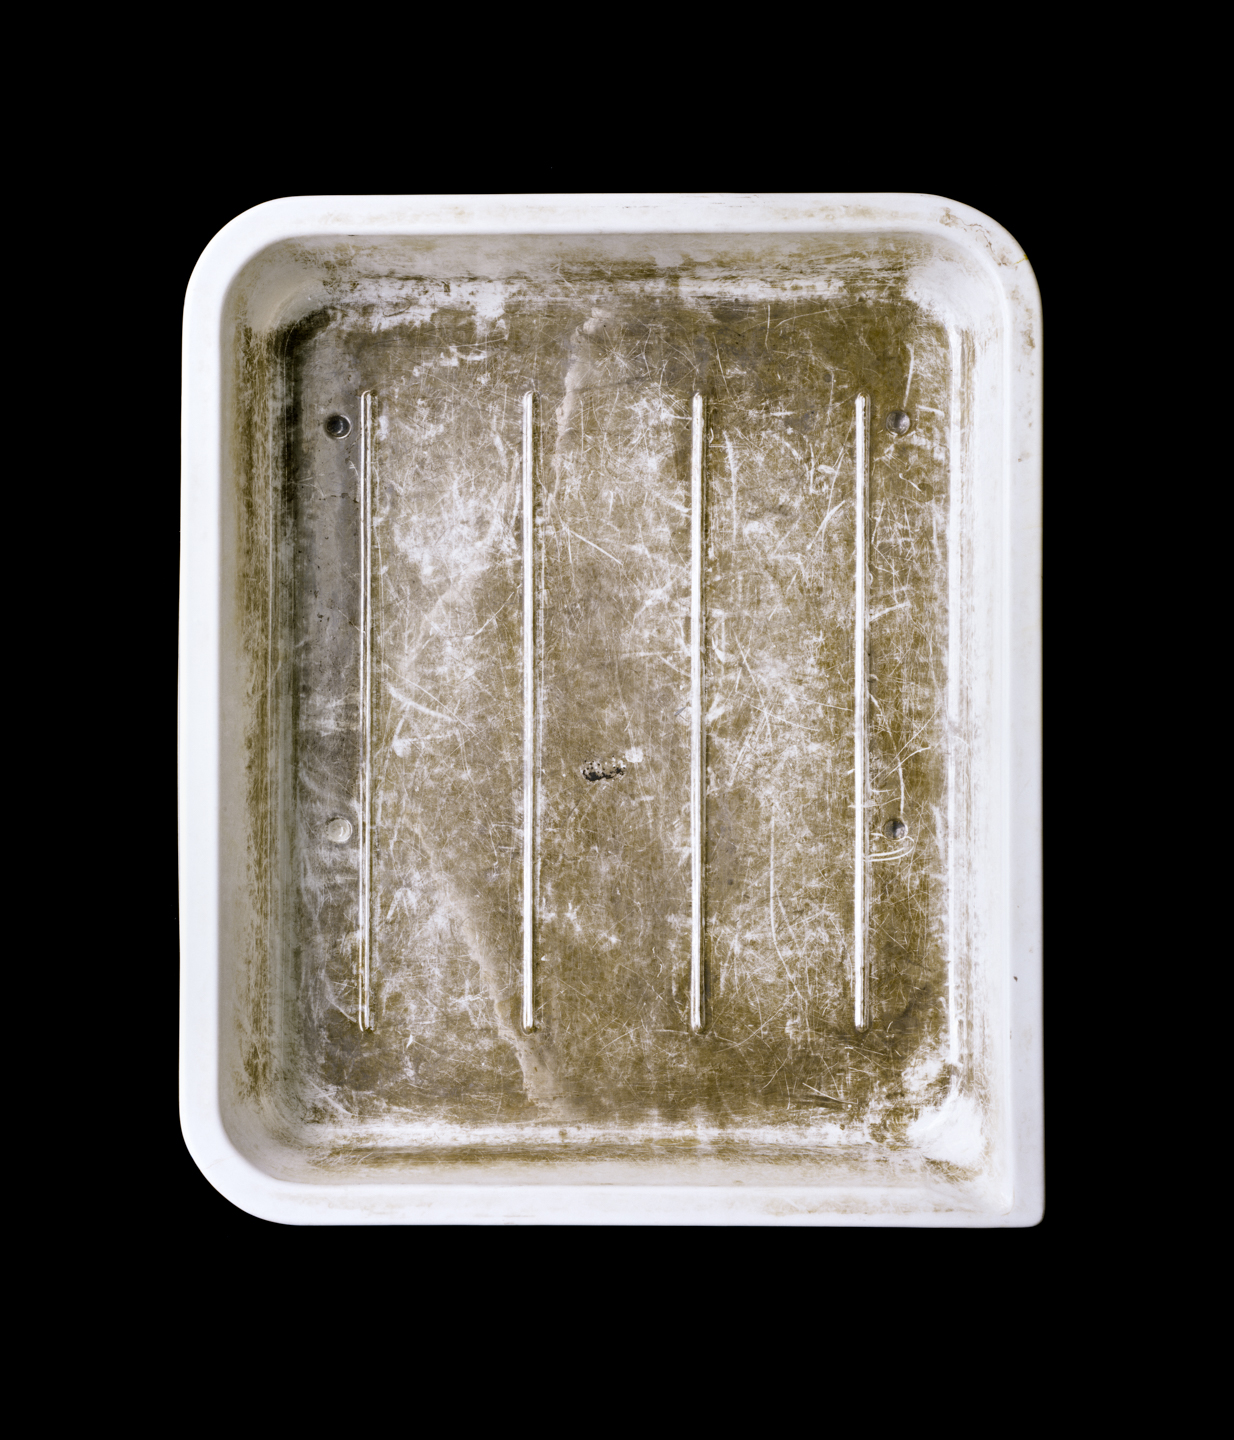 David Graham's Developer Tray, 2010